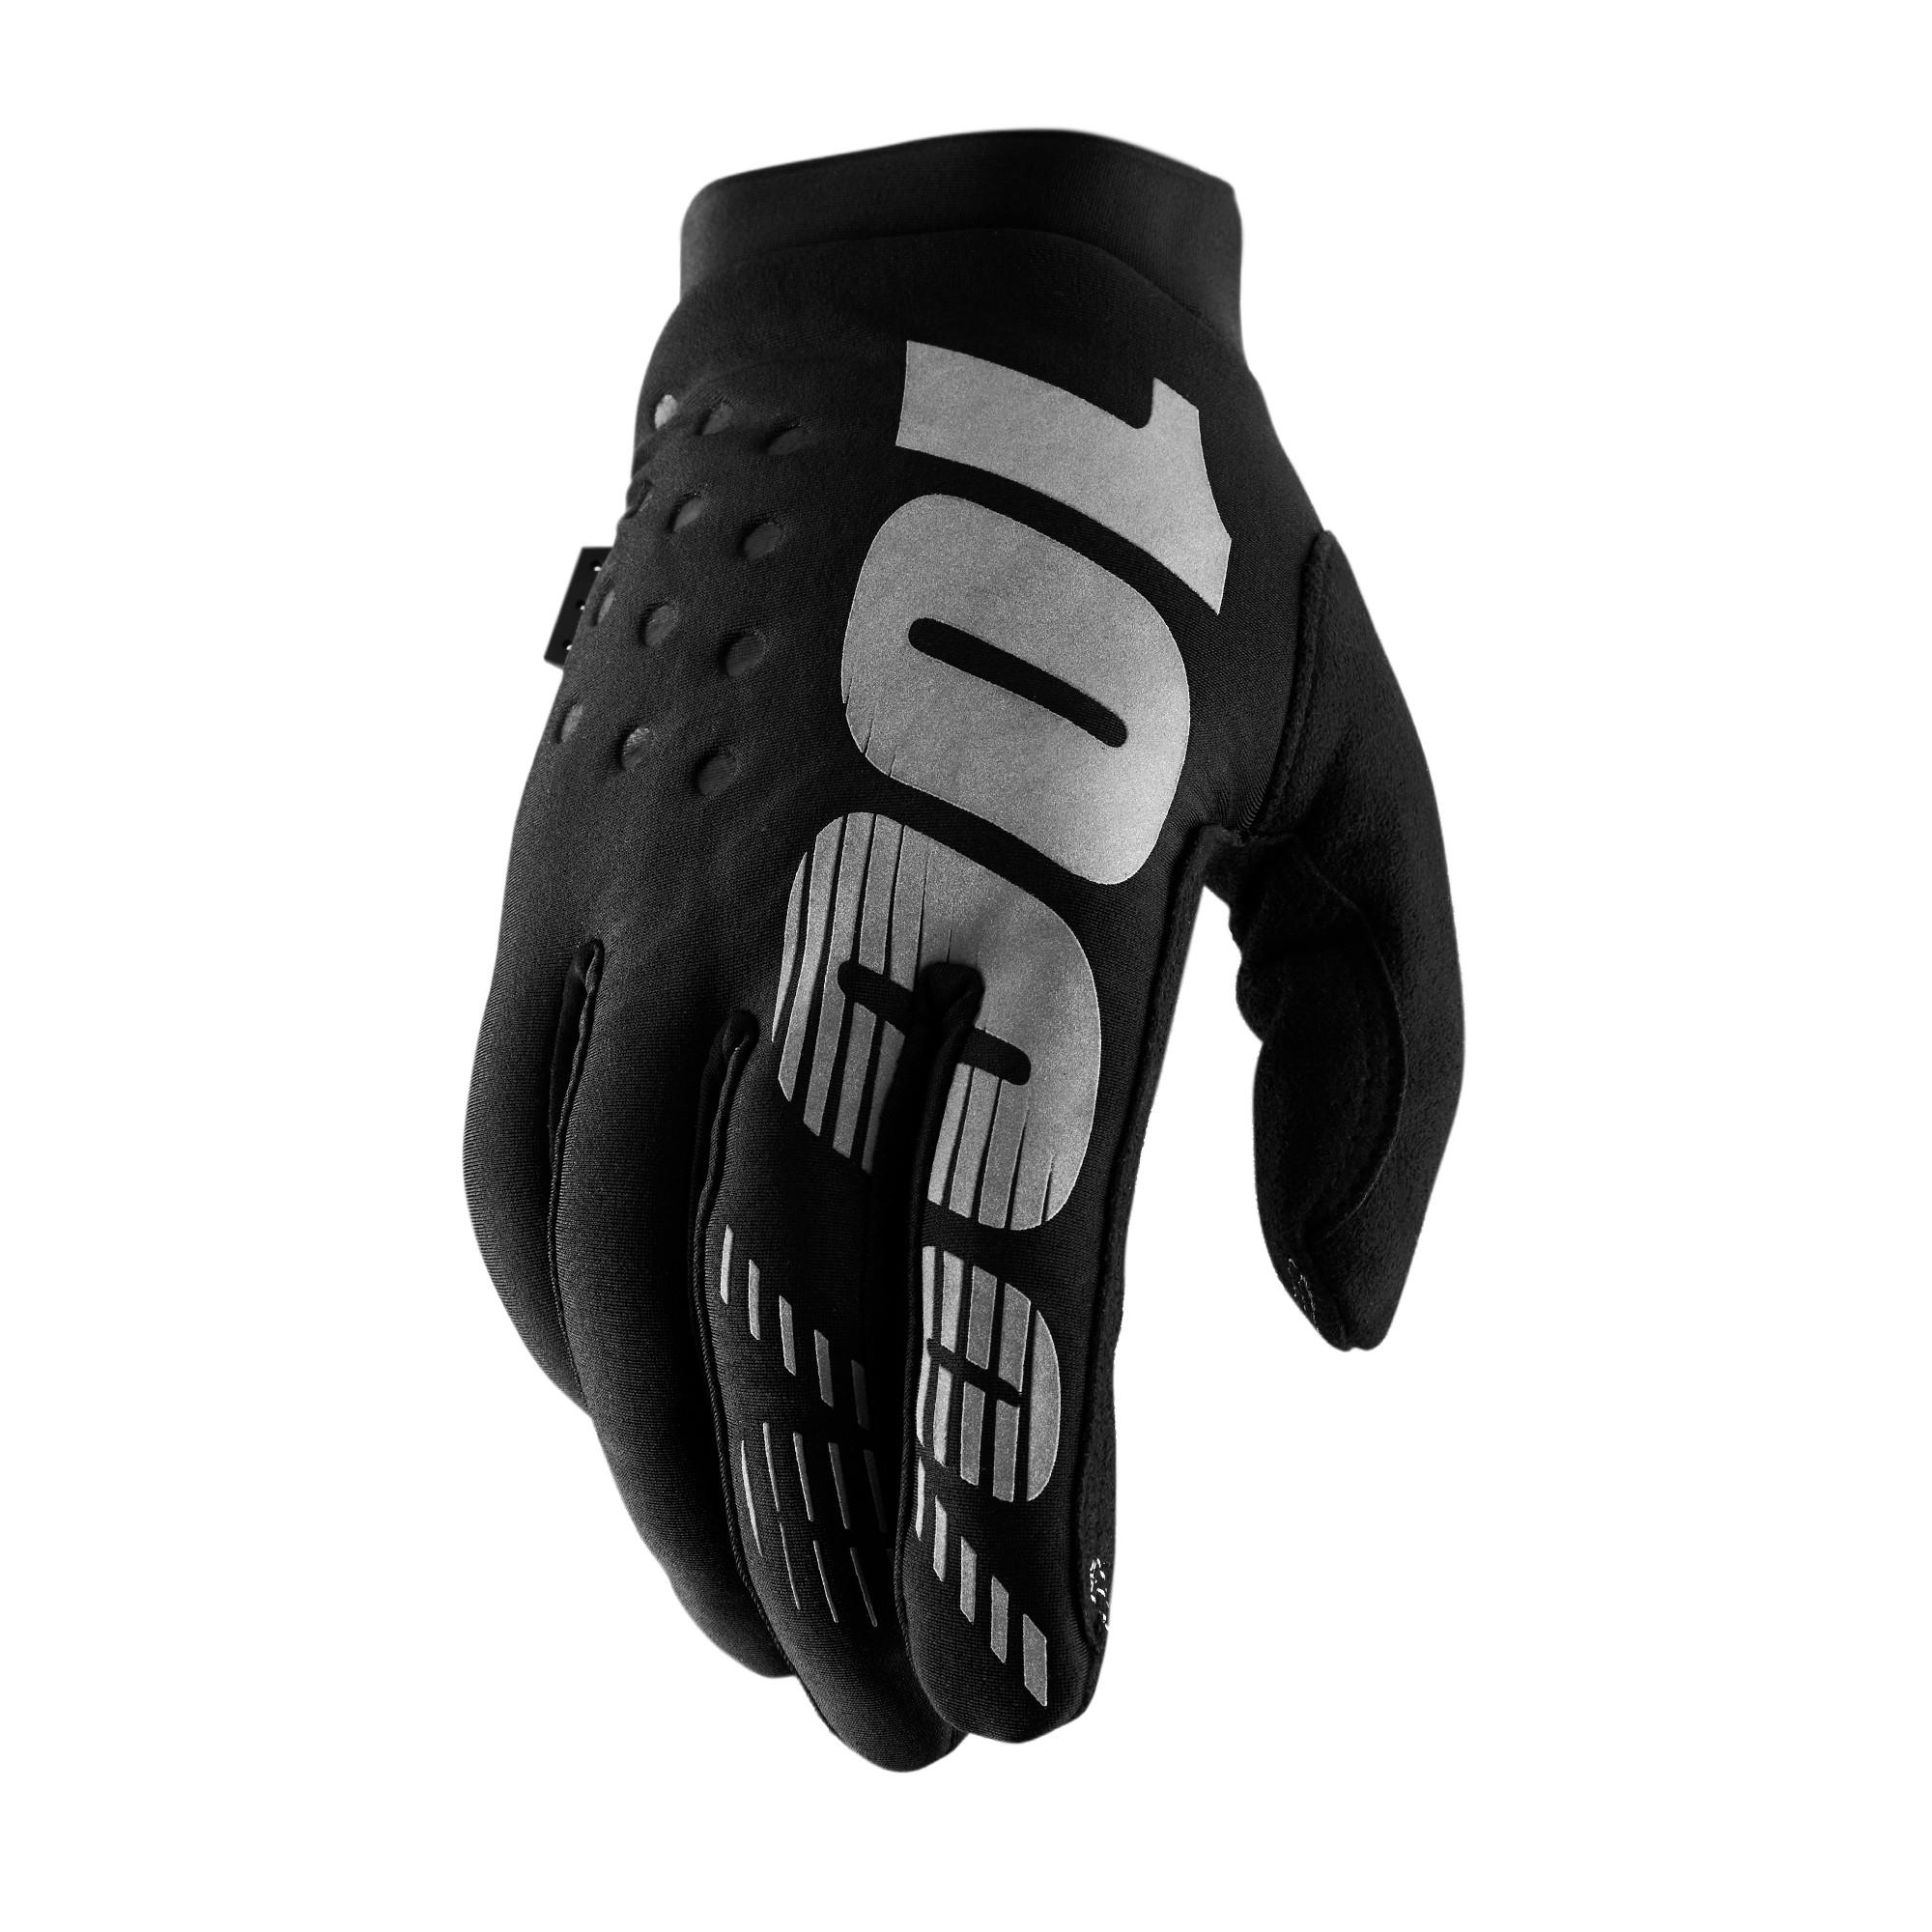 BRISKER 100% Women's Glove Black/Grey